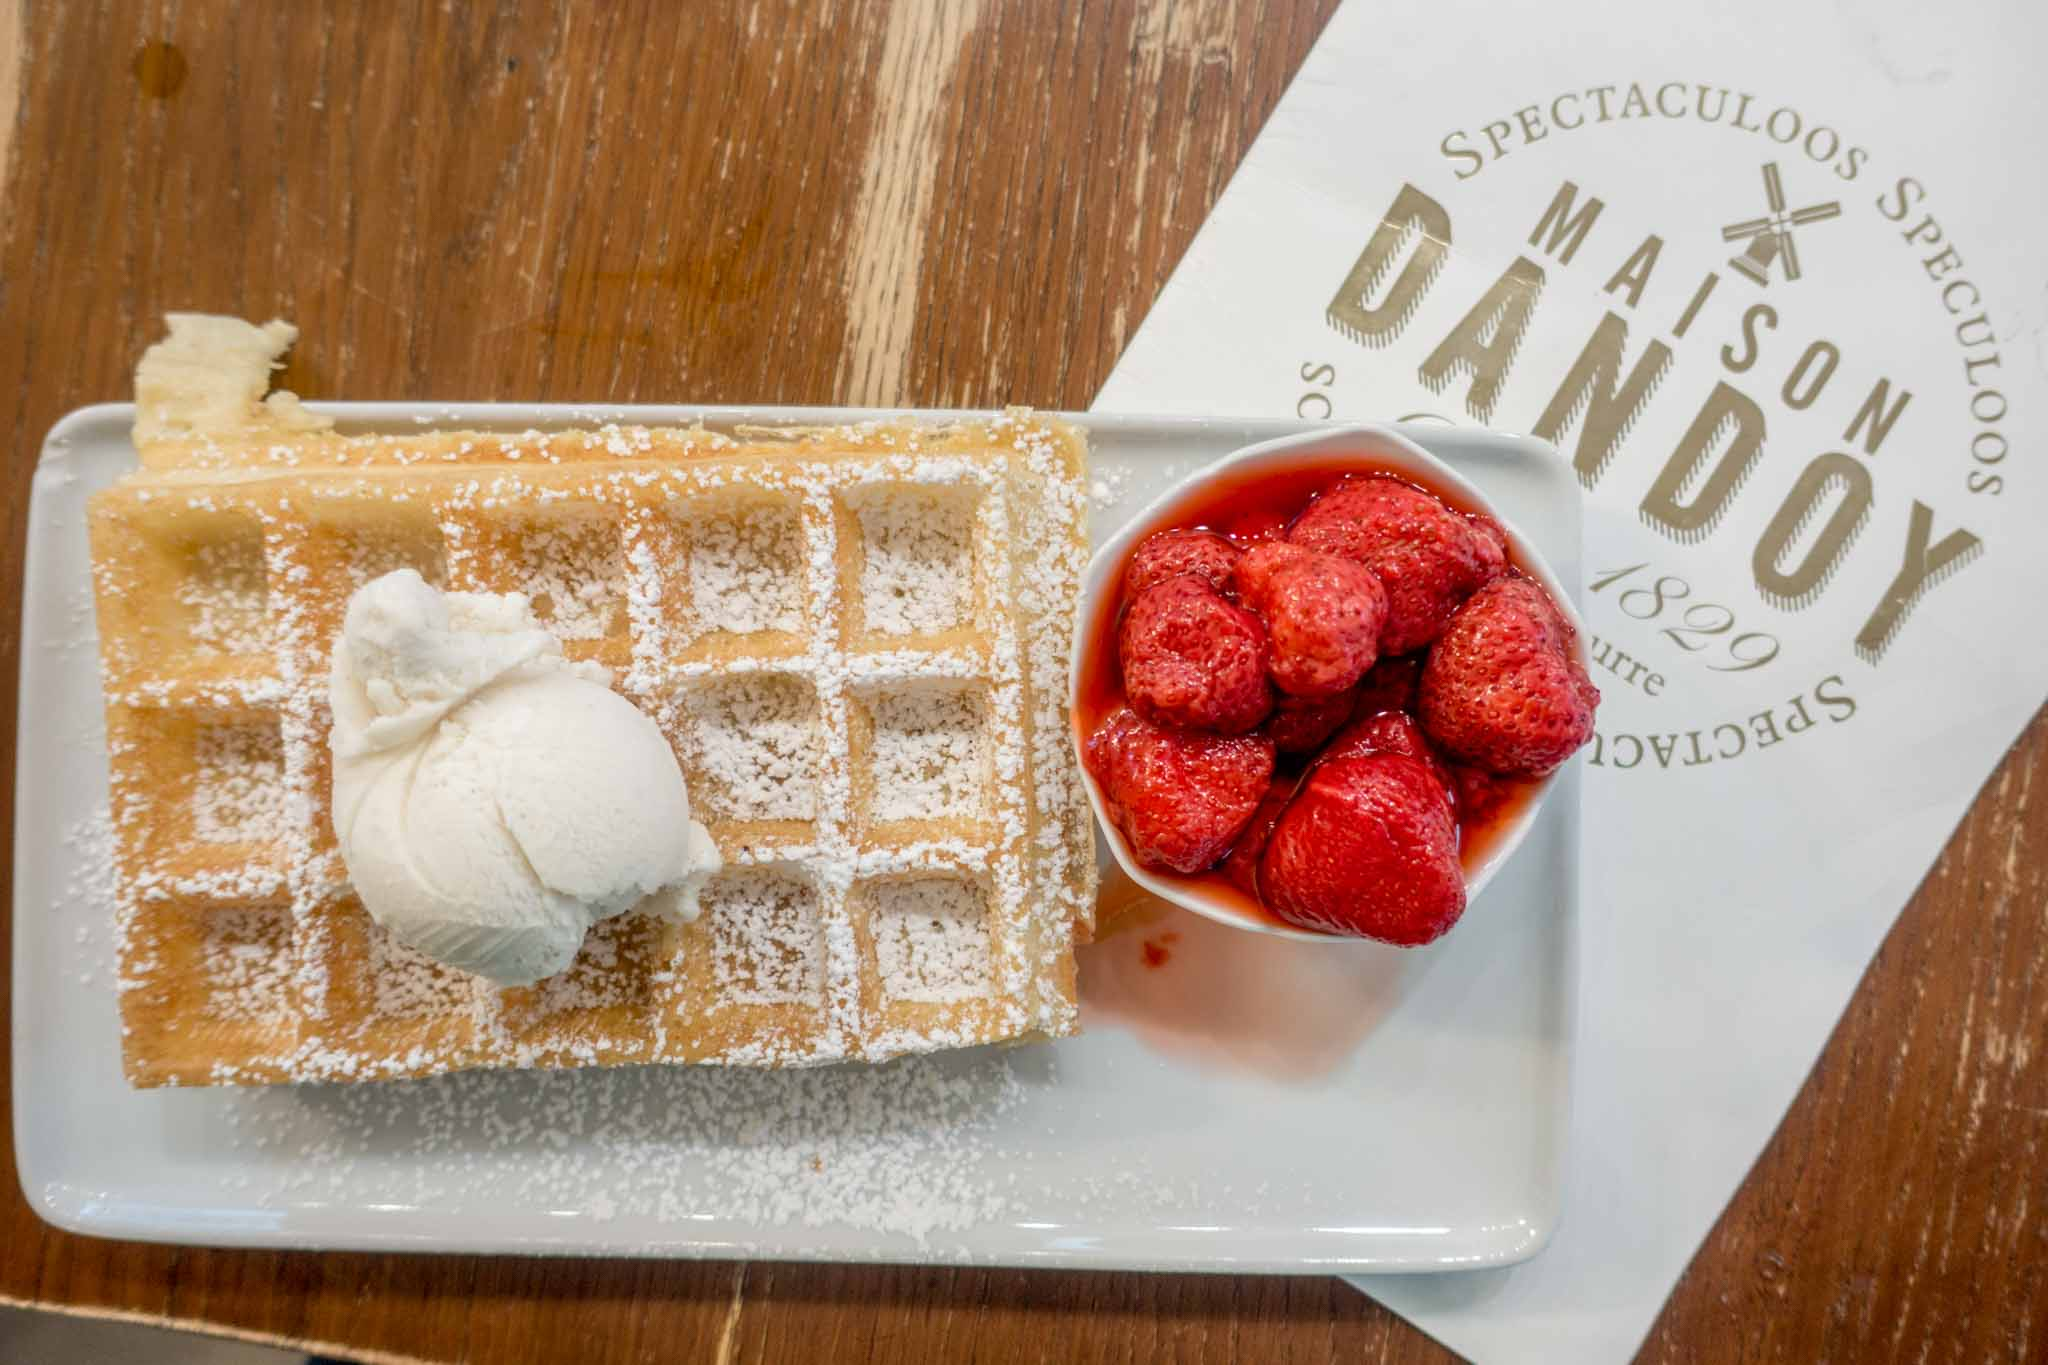 Waffle with ice cream and strawberries at Maison Dandoy